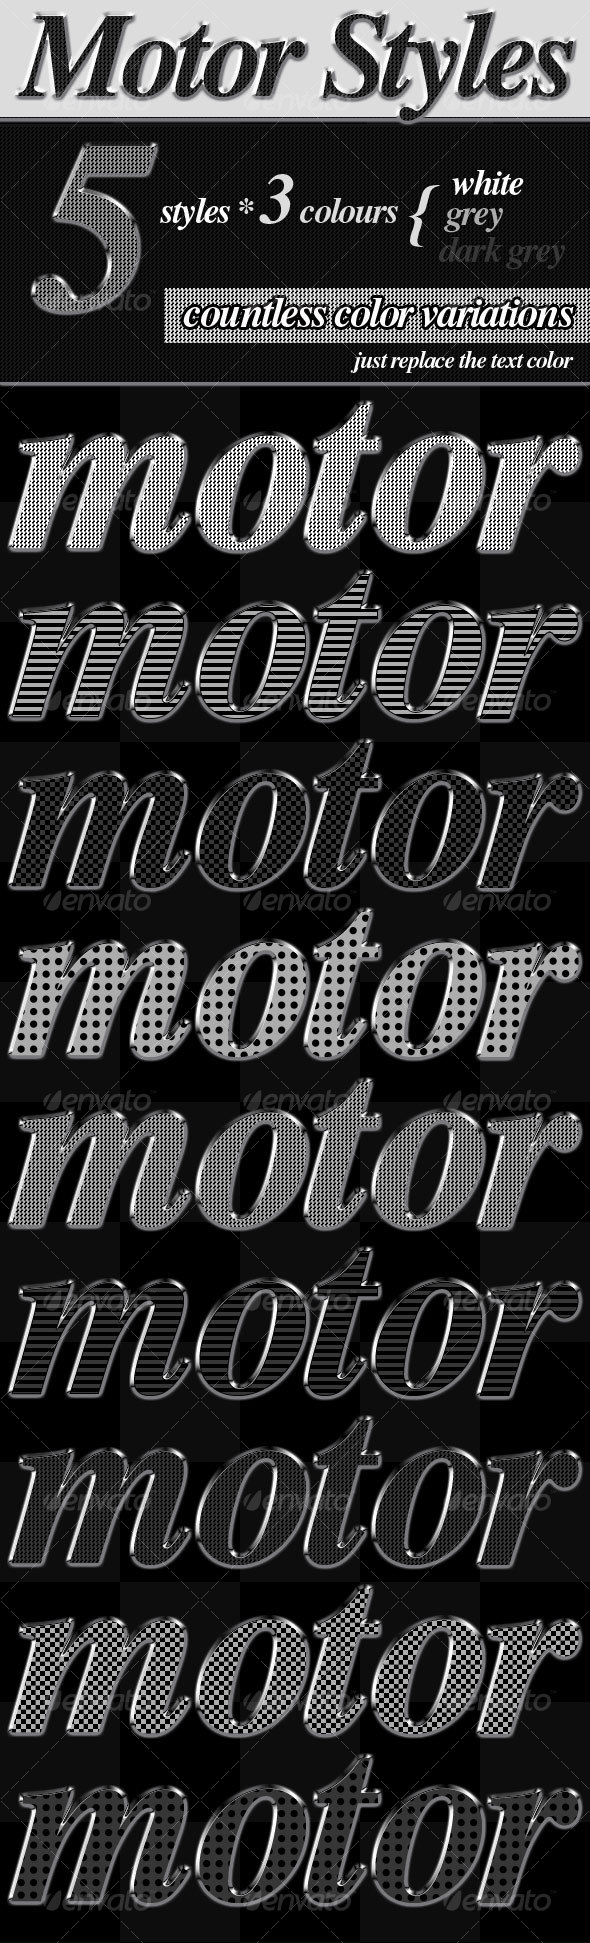 Motor Styles - Text Effects Styles